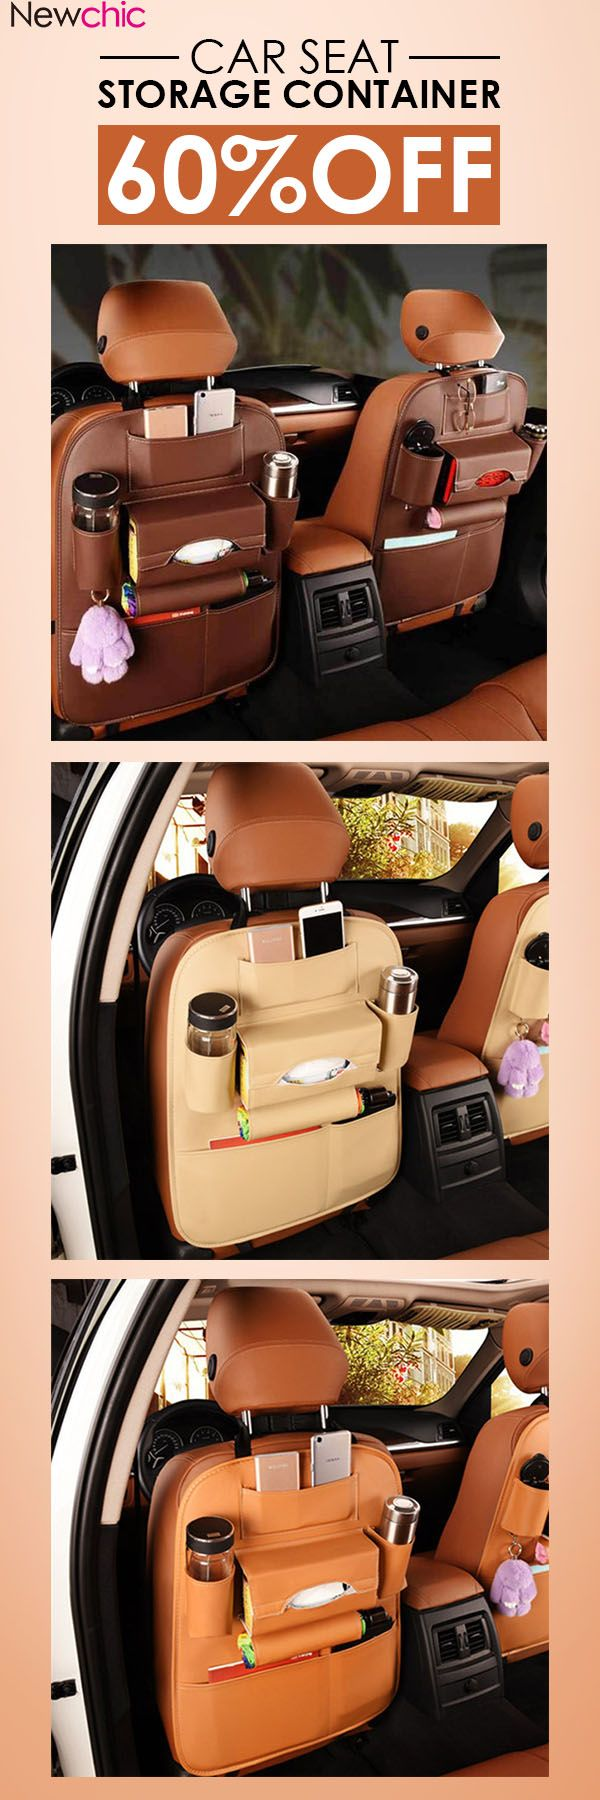 US$15.99 5 Styles Leather Car Storage Bag Multi-compartment Car Seat Storage Container Outdoors Hanging Bag